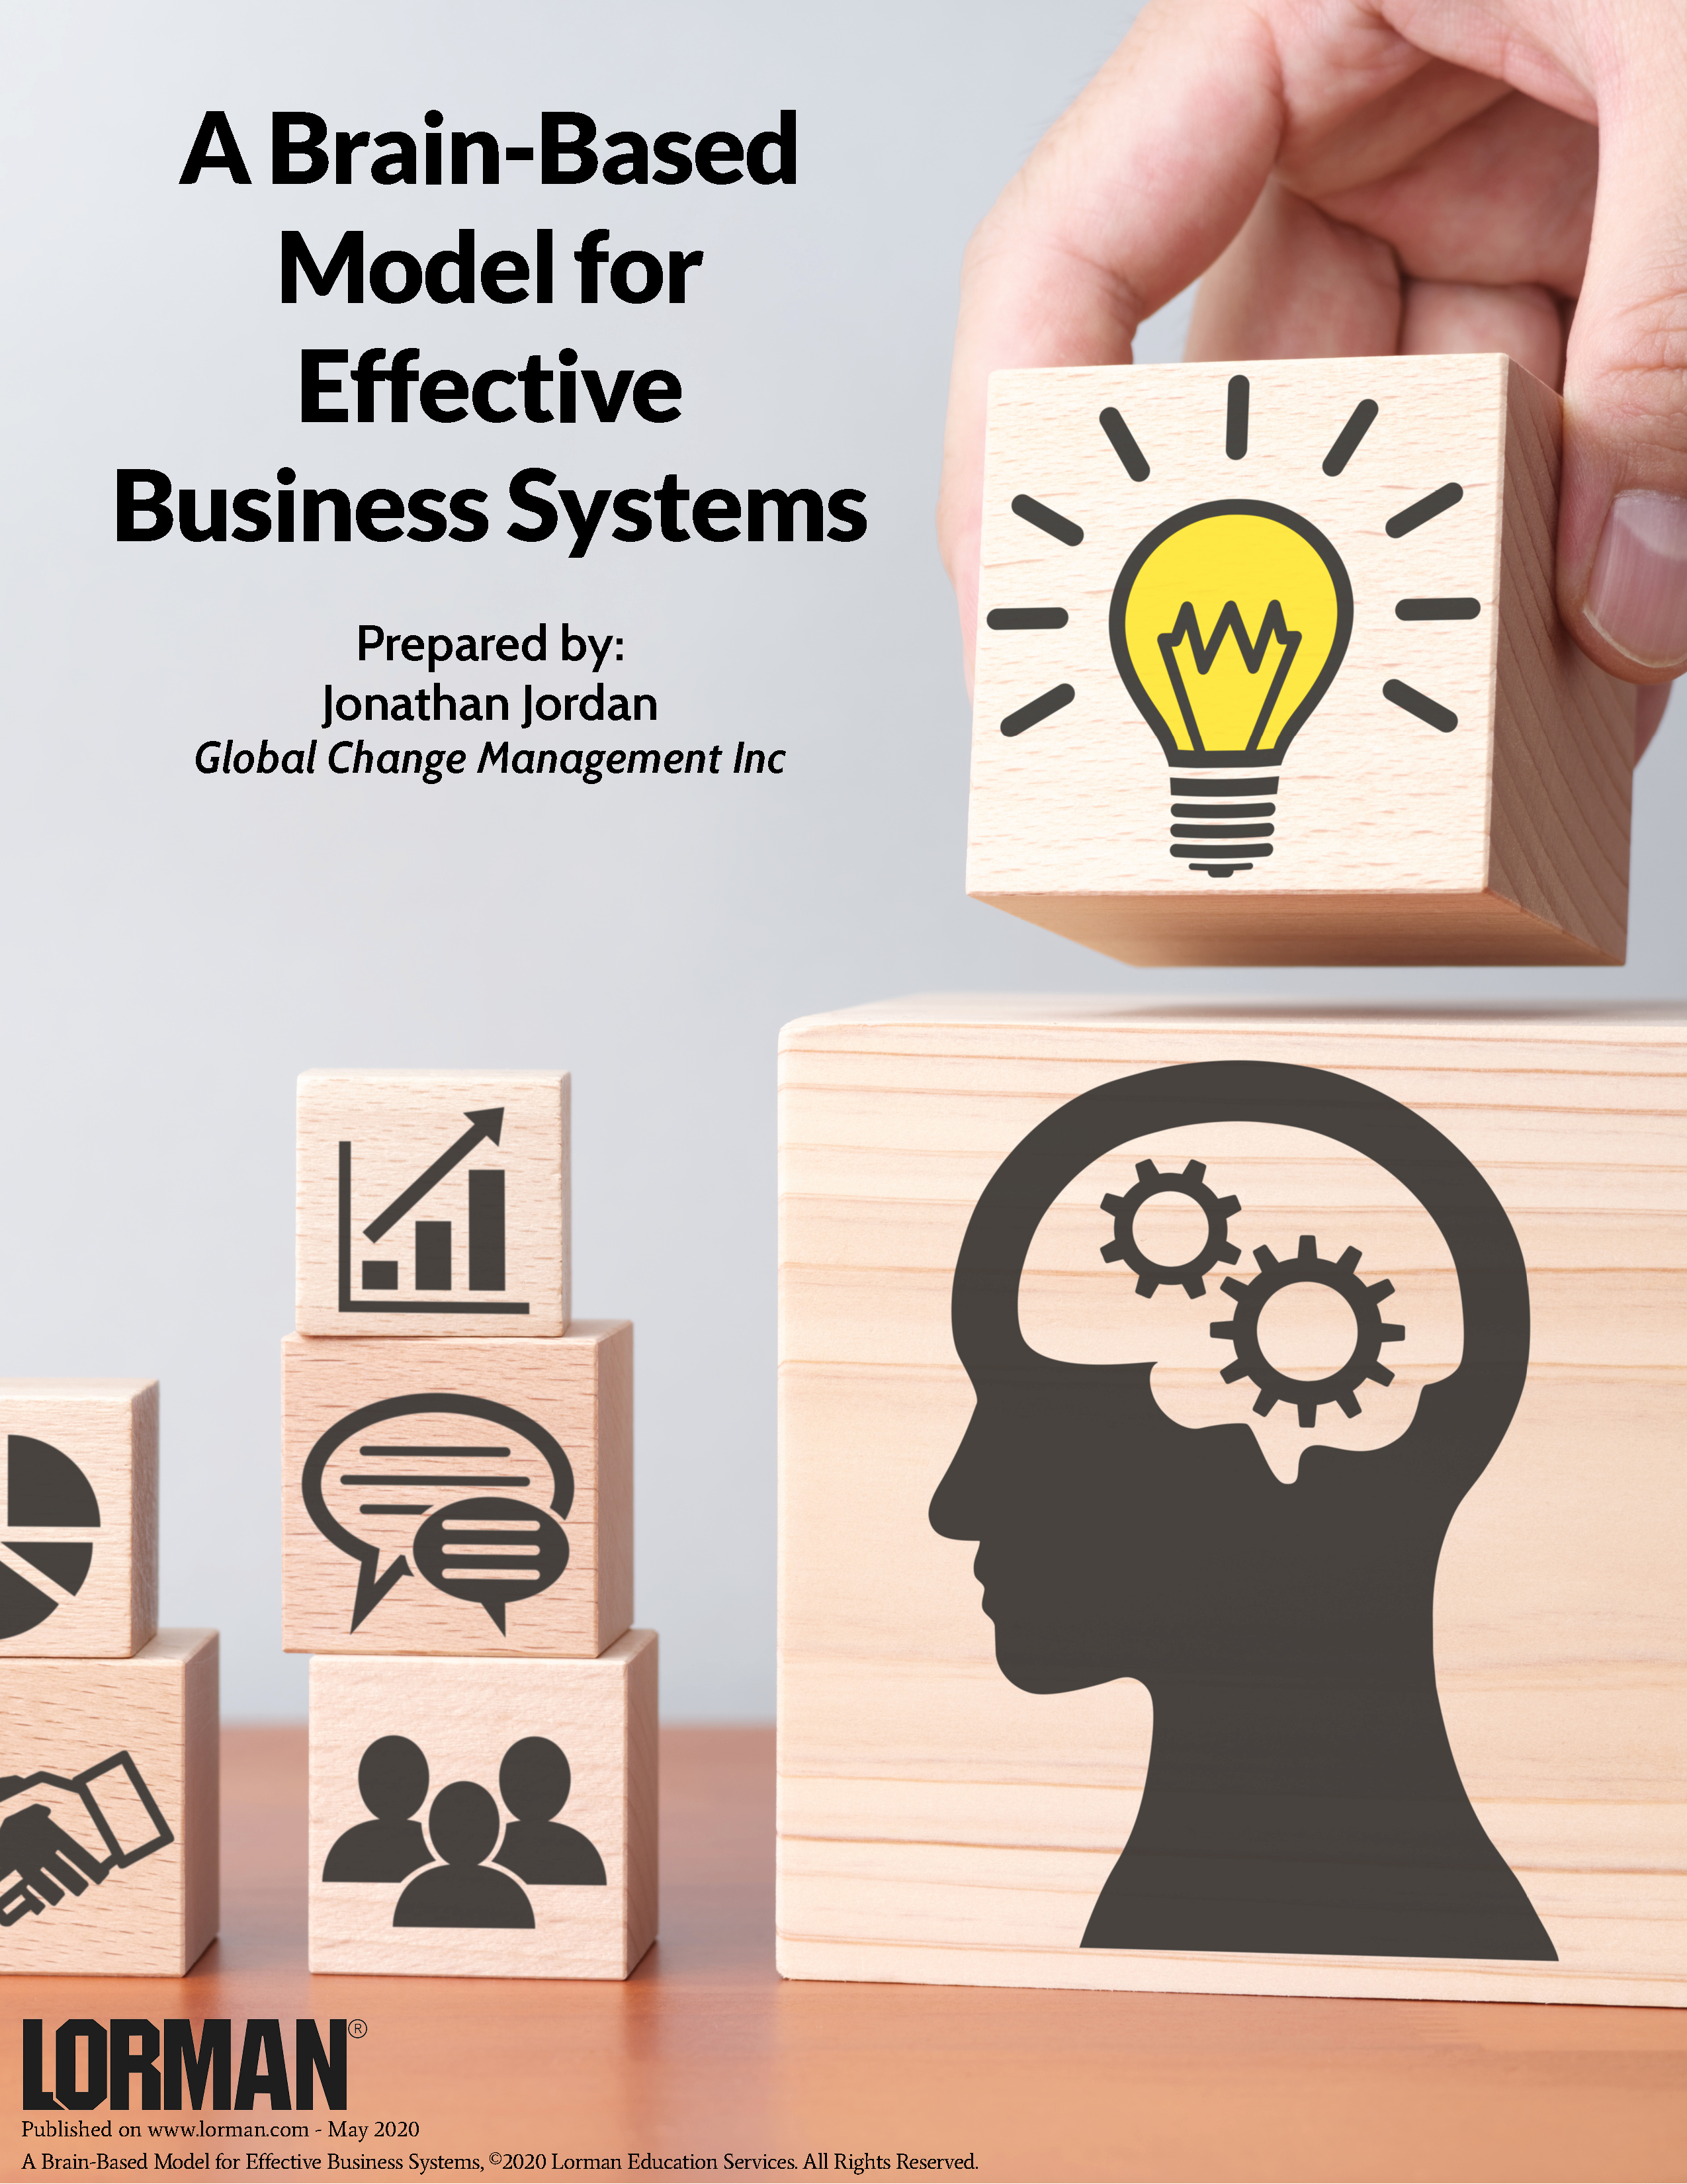 A Brain-Based Model for Effective Business Systems